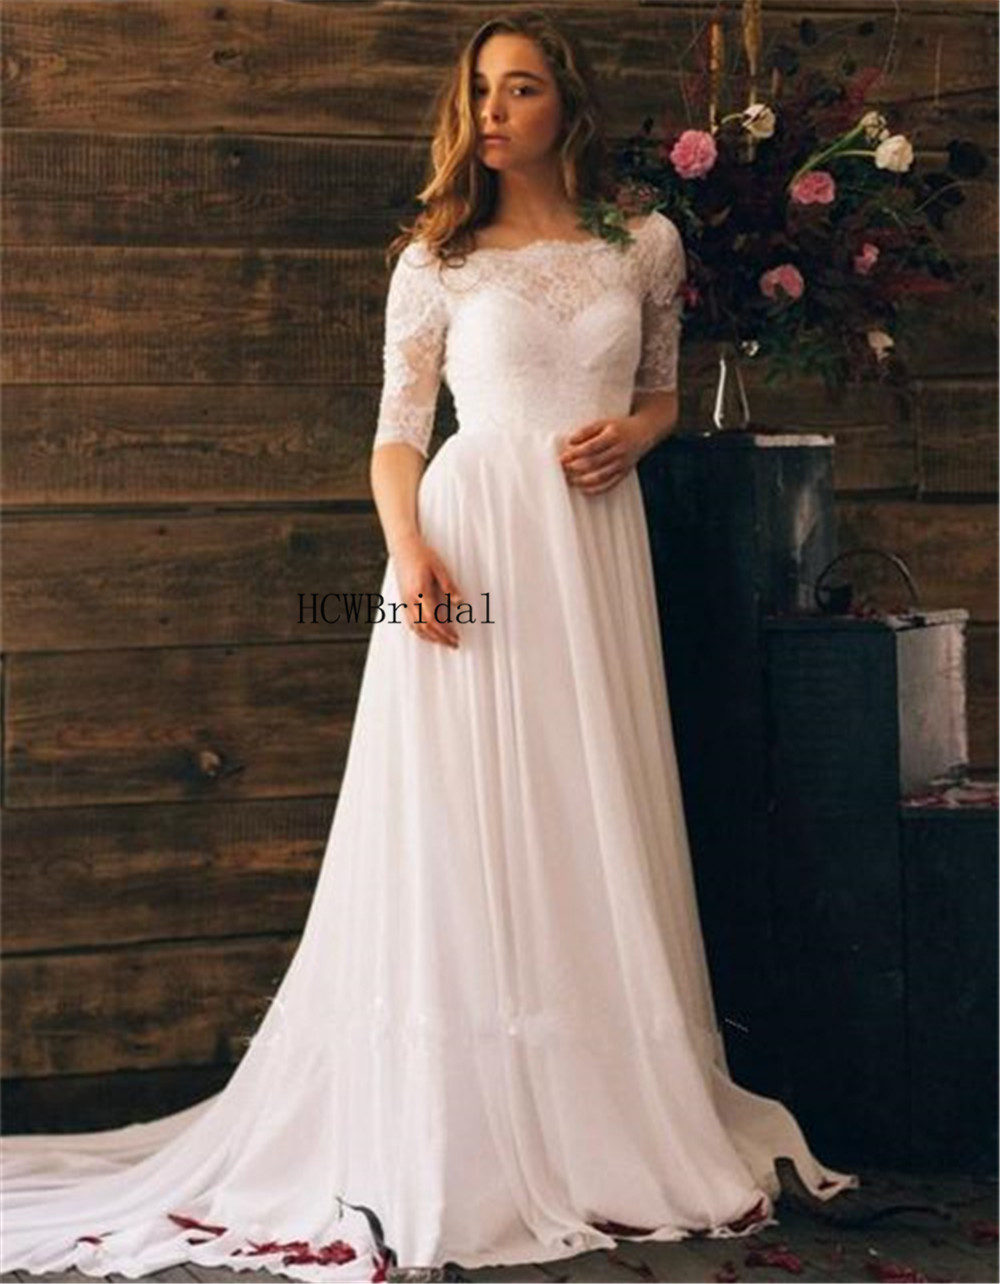 Us 9261 37 Offsoft Lace Chiffon Wedding Dresses Backless Sweep Train A Line 34 Sleeve Simple Bridal Dress 2019 Hot Selling Bridal Party Gowns In